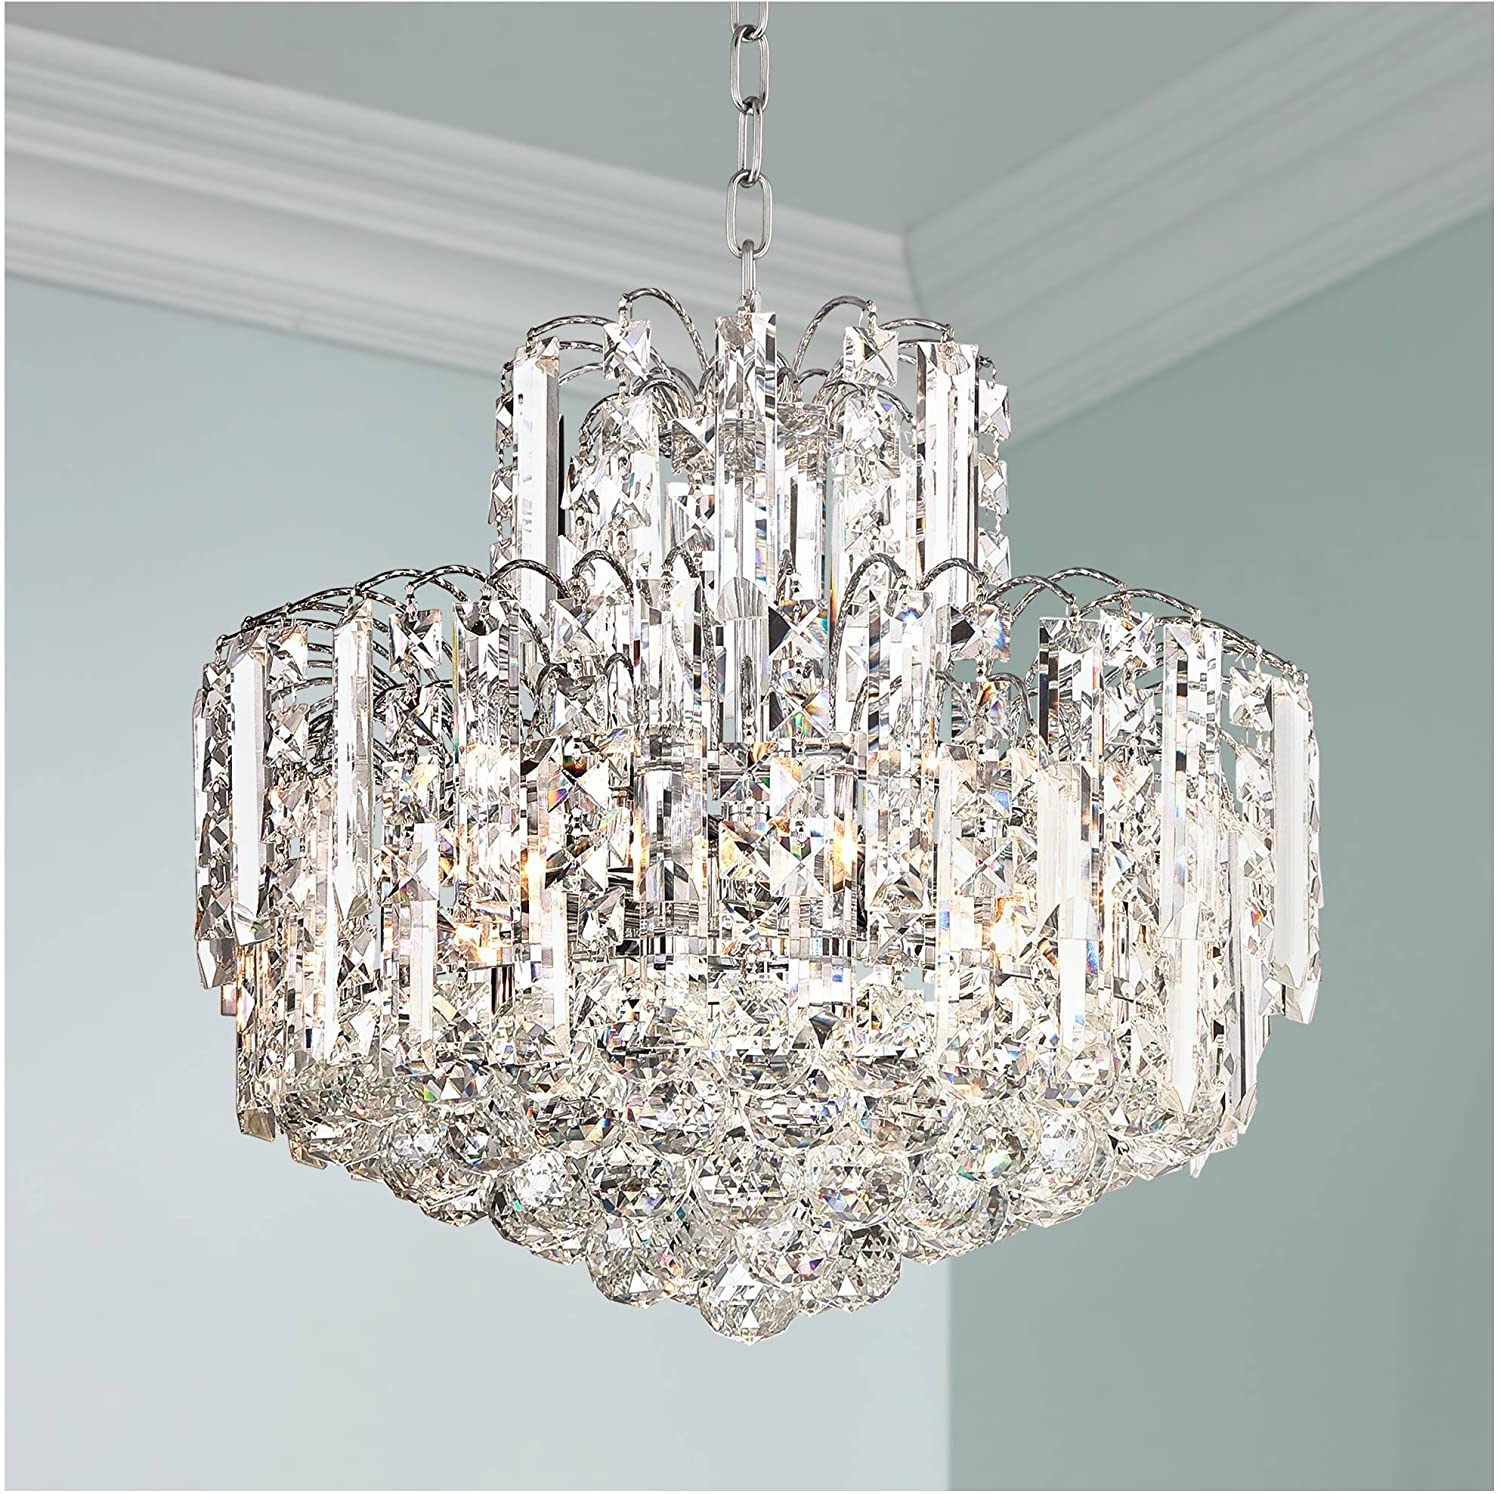 """Leya Chrome Chandelier 18"""" Wide Clear Crystal Glass Fixture for Dining Room House Foyer Kitchen Island Entryway Bedroom - Vienna Full Spectrum"""